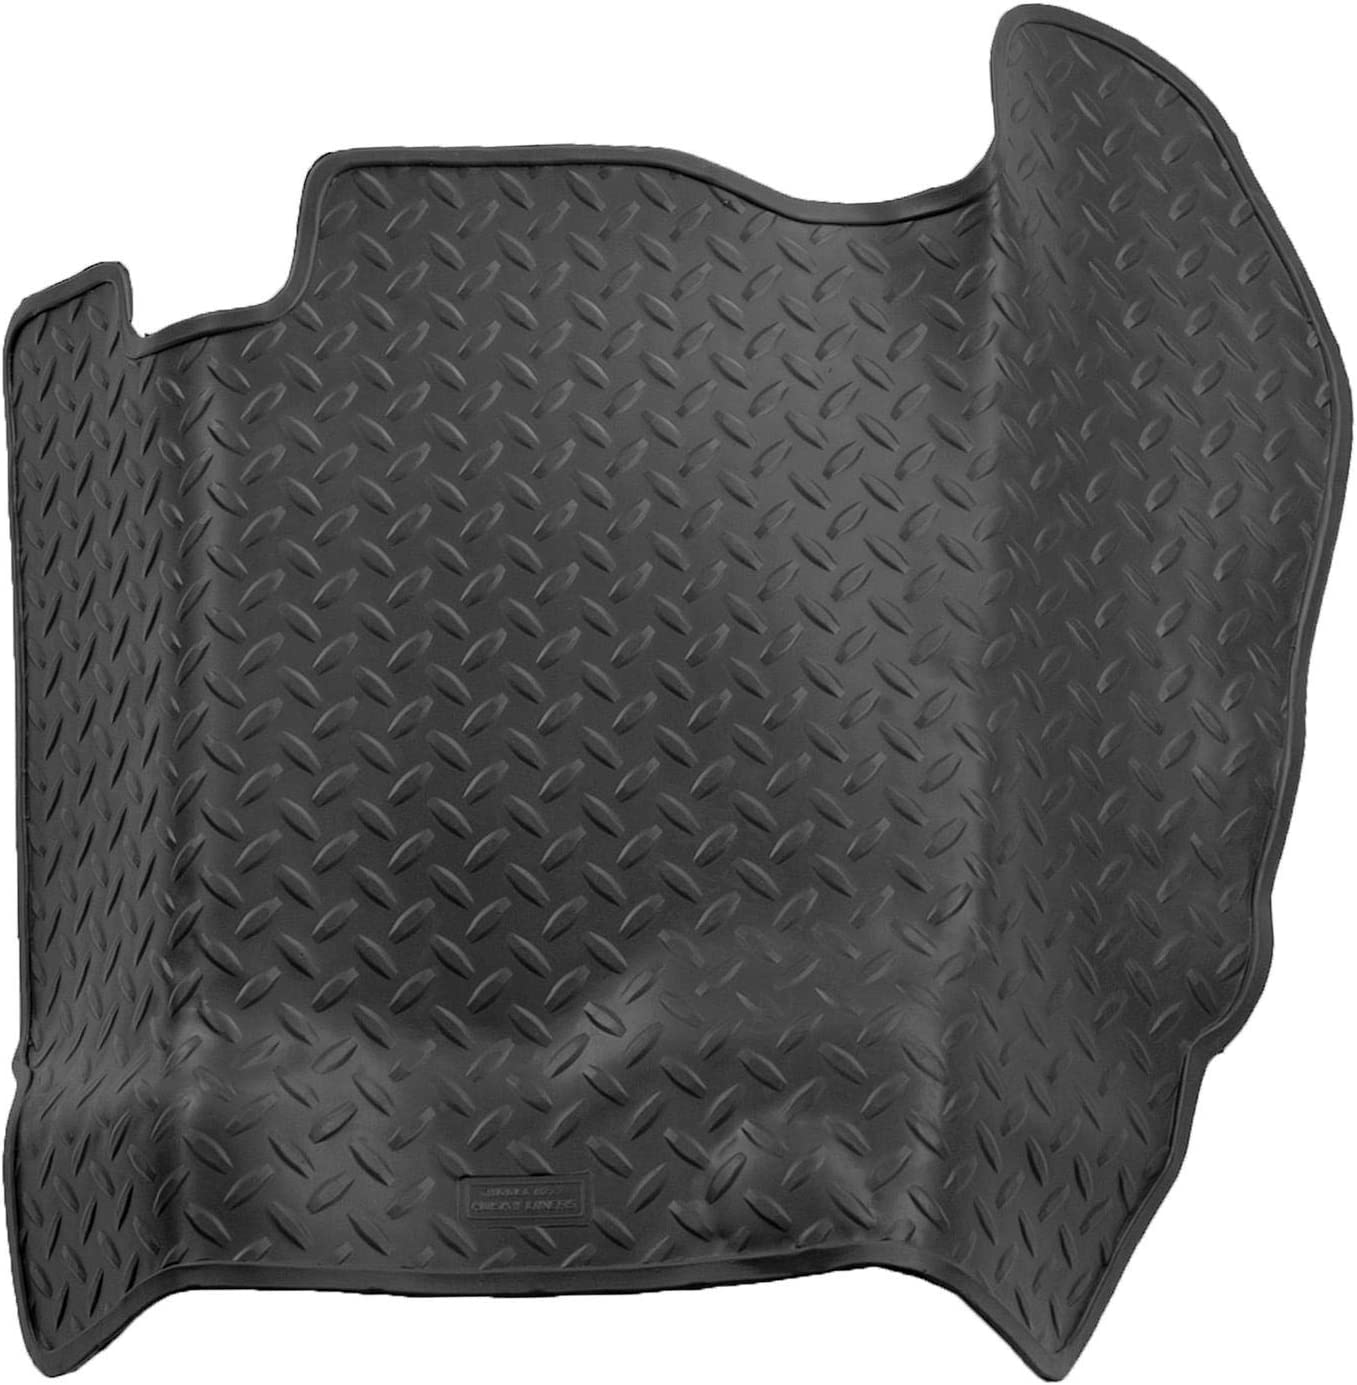 Husky Liners 82331 specialty shop Fits free shipping 1992-96 Styl SuperCab Classic Ford F-150